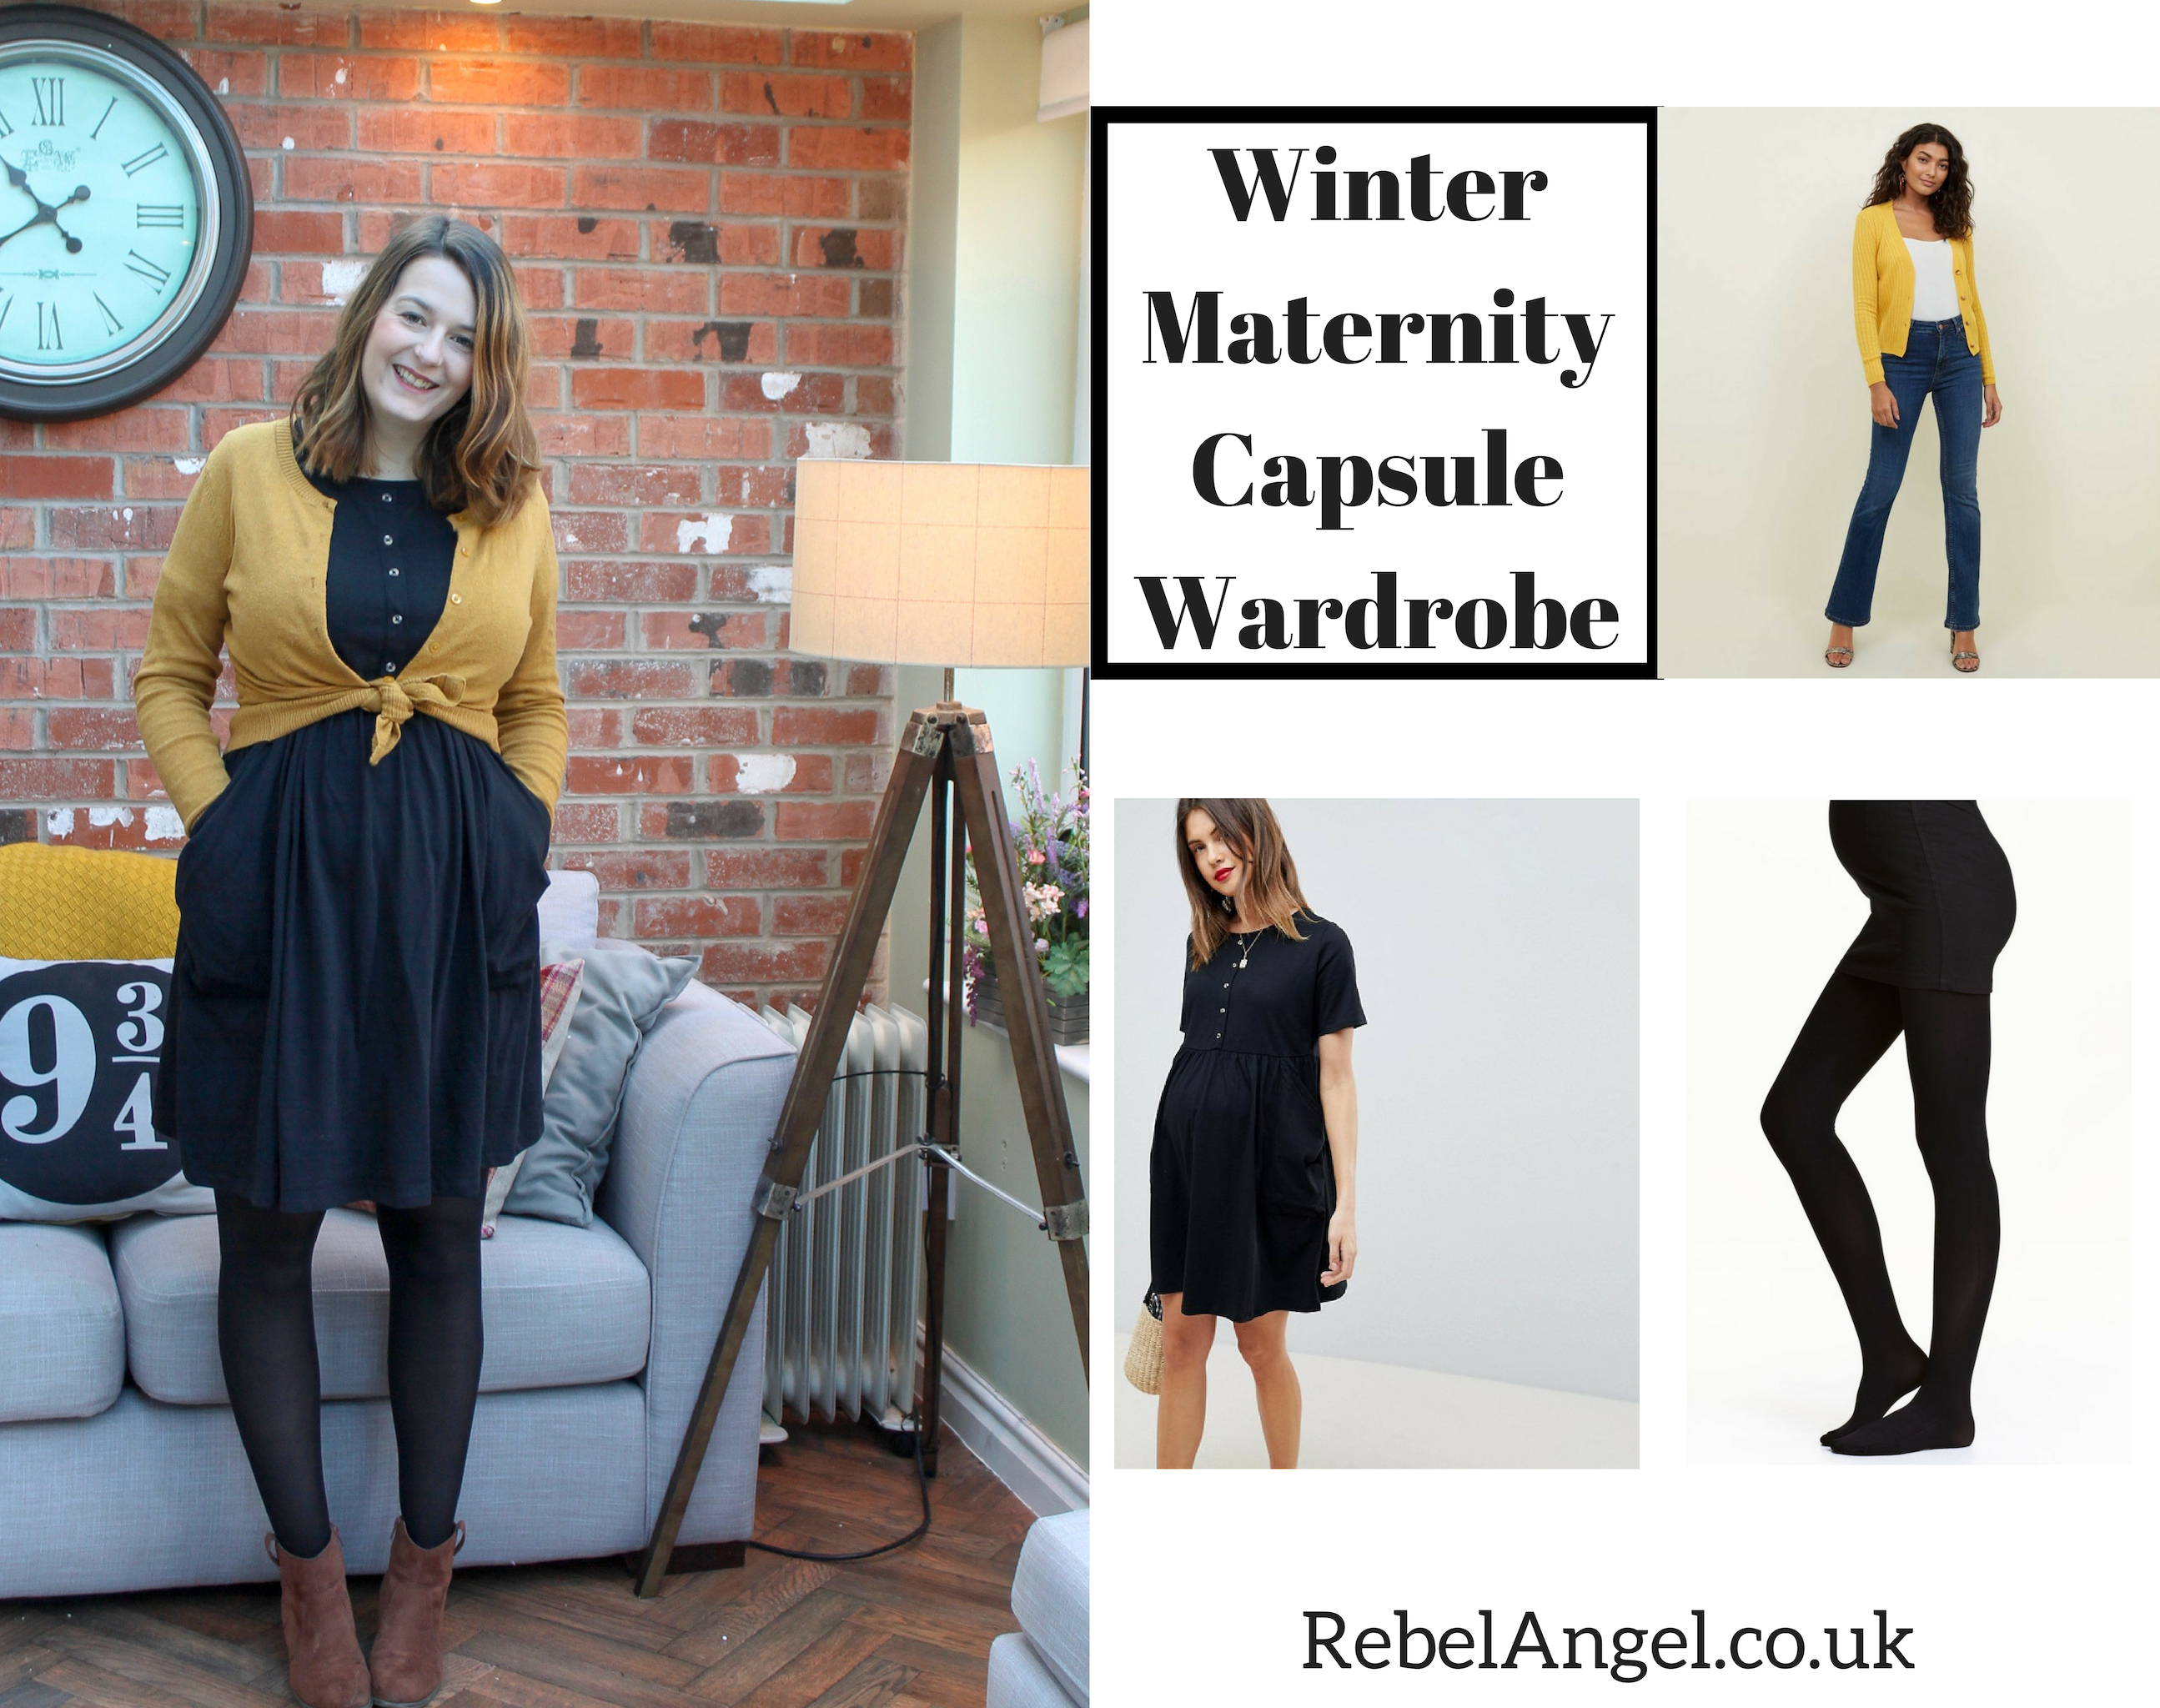 Winter Maternity Capsule Wardrobe outfit with black maternity dress & mustard cardigan